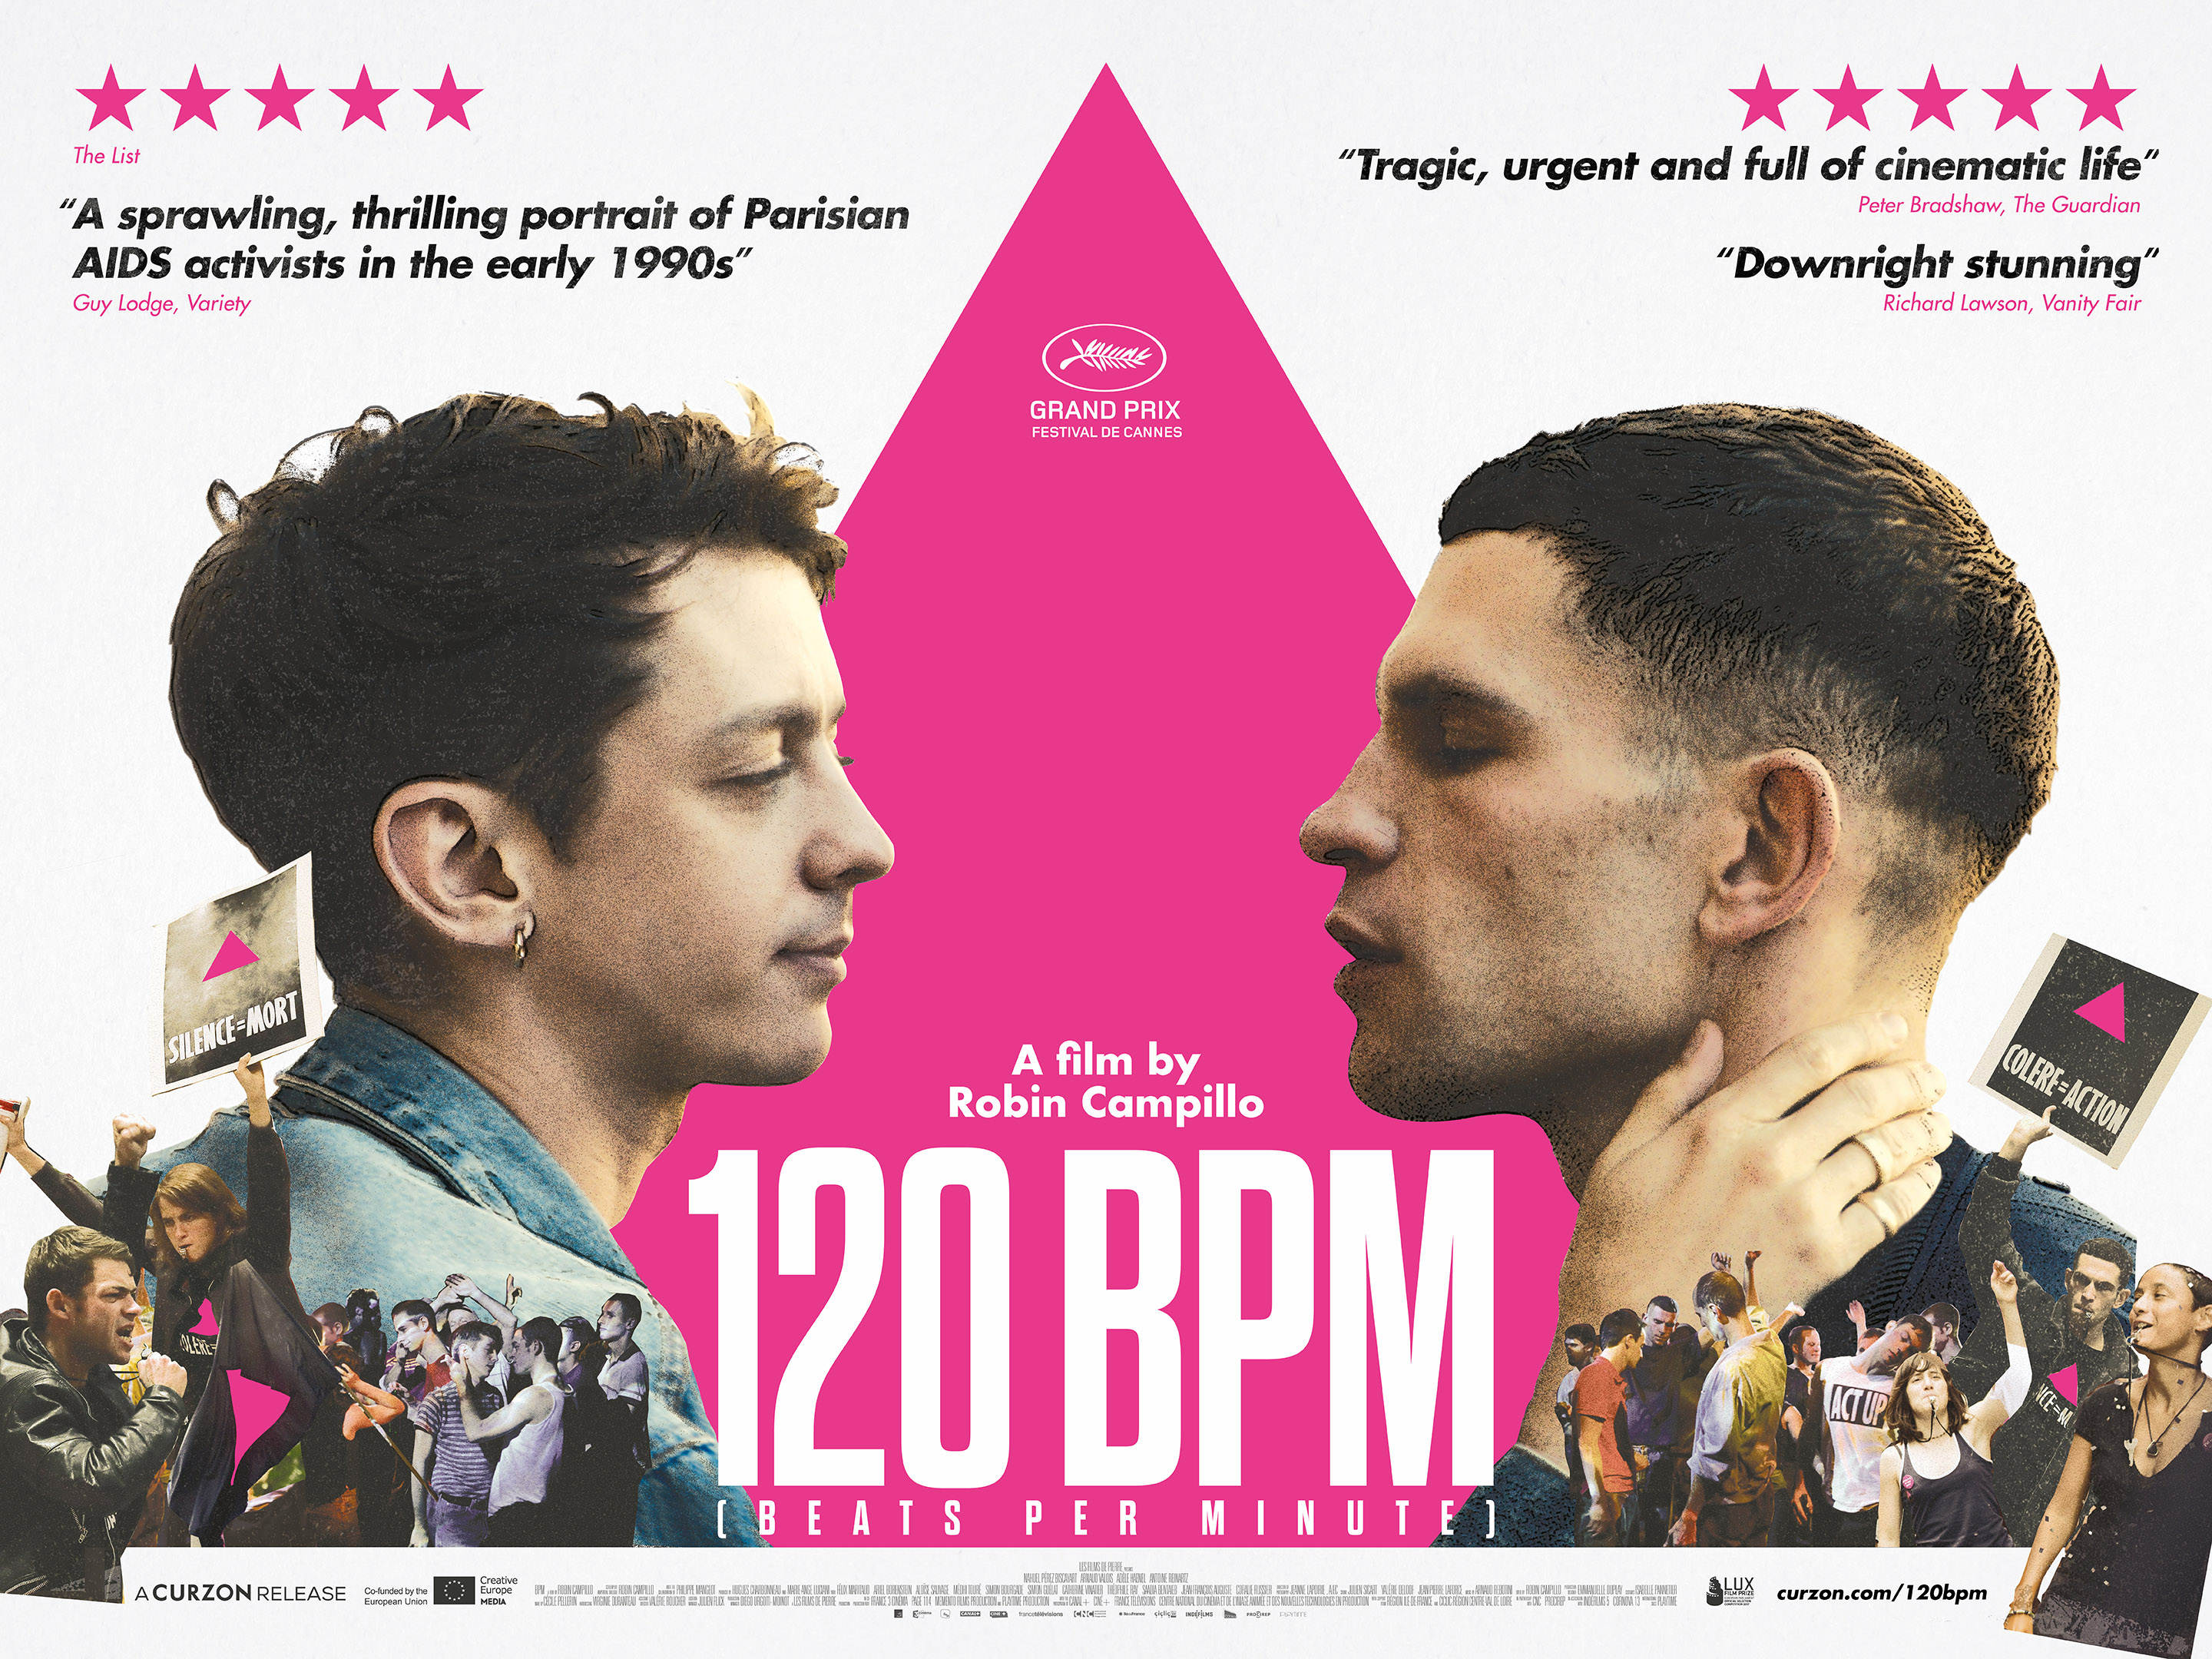 120 BPM Beats Per Minute Paints An Emotional Human Portrait Of The Crisis As It Charts Everyday Stuggles A Community Fighting To Survive